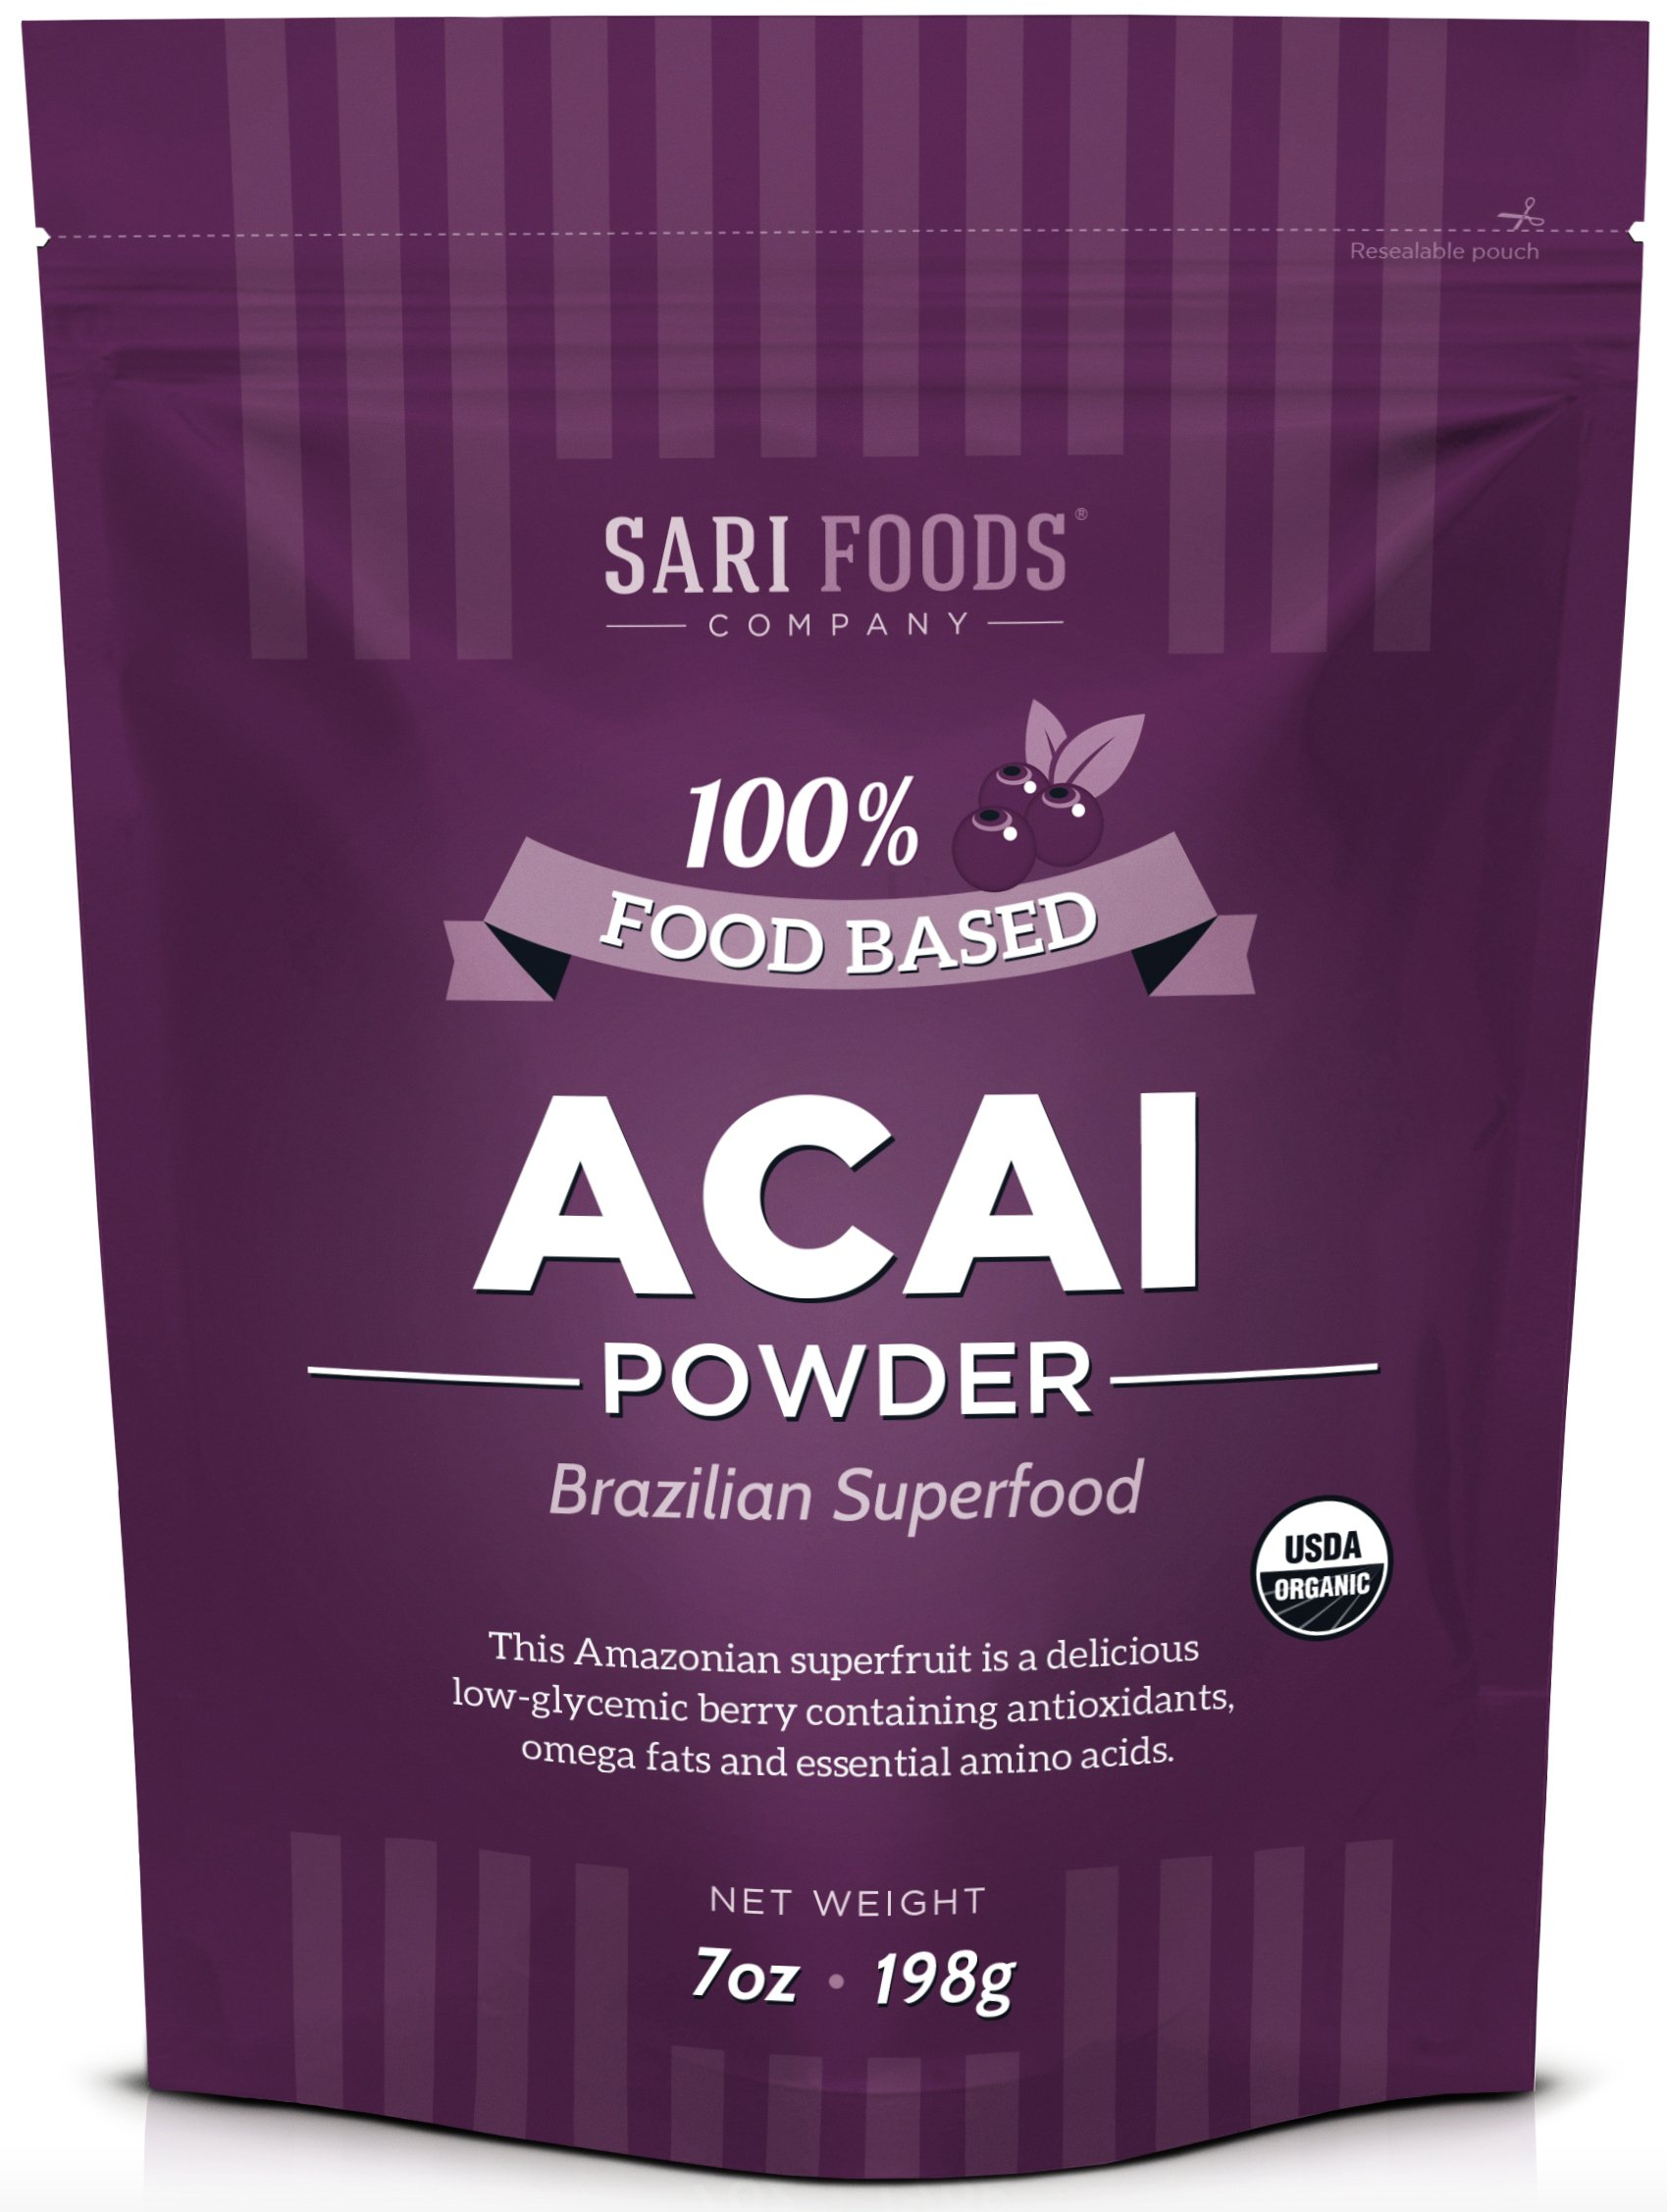 Pure Organic Acai Powder (7 Ounce) - 100% Natural Freeze Dried Superfood. Non-Synthetic & Naturally Occurring Plant Based Nutrition: Antioxidants, Omega Fats, Essential Amino Acids, Calcium and Iron.